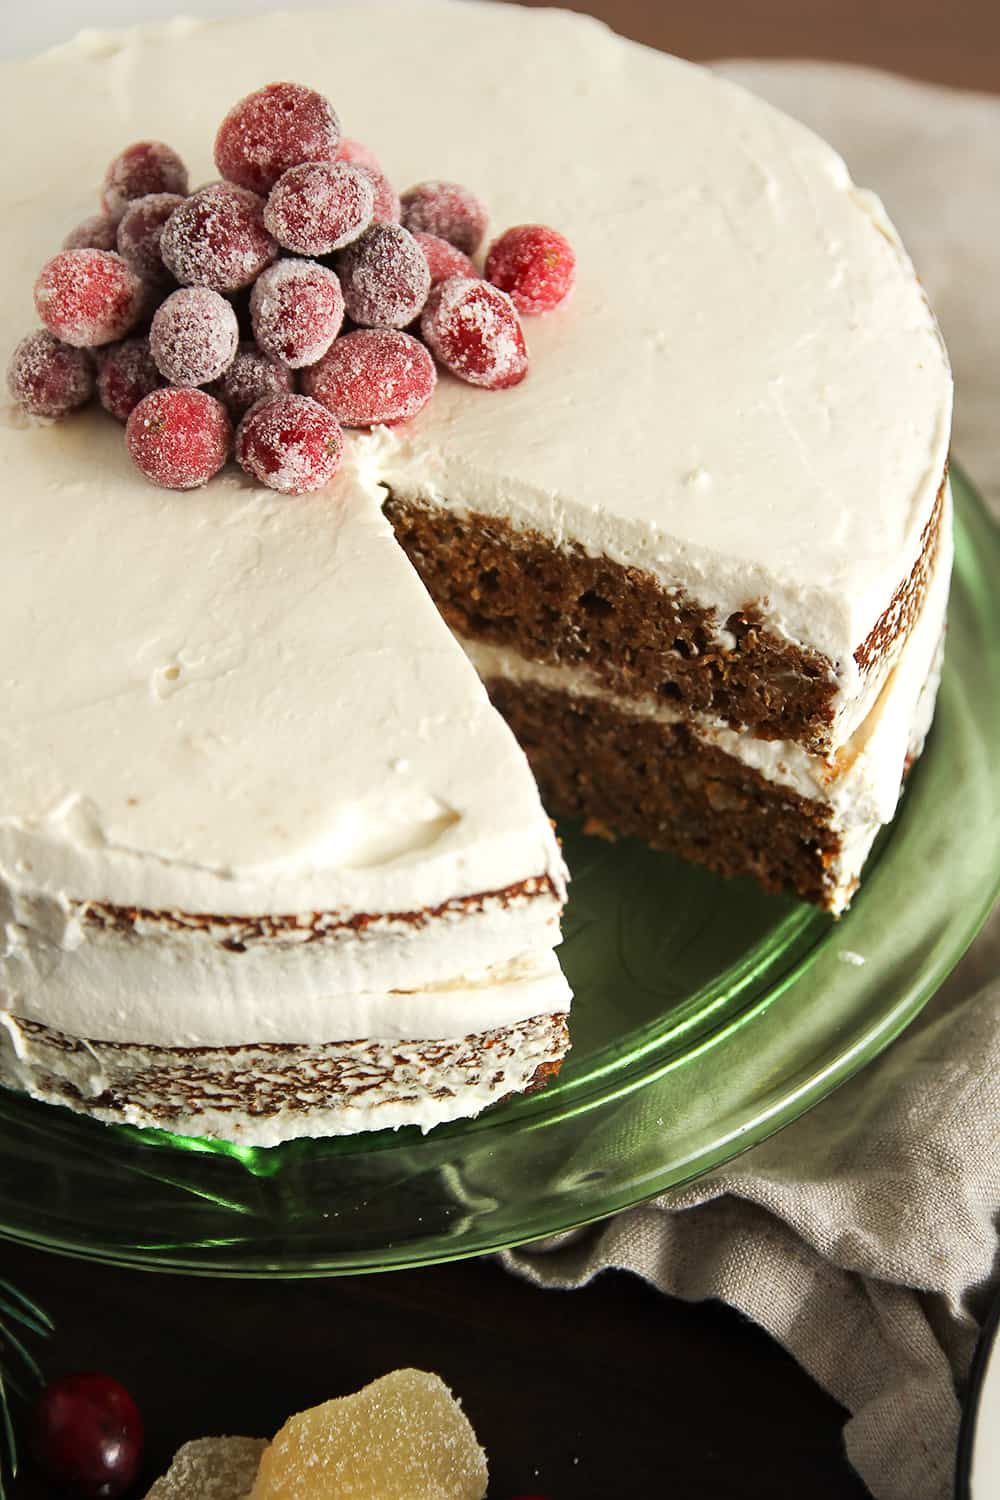 Gingerbread Layer Cake is two layers of gingerbread cake with whipped cream frosting and sugared cranberries